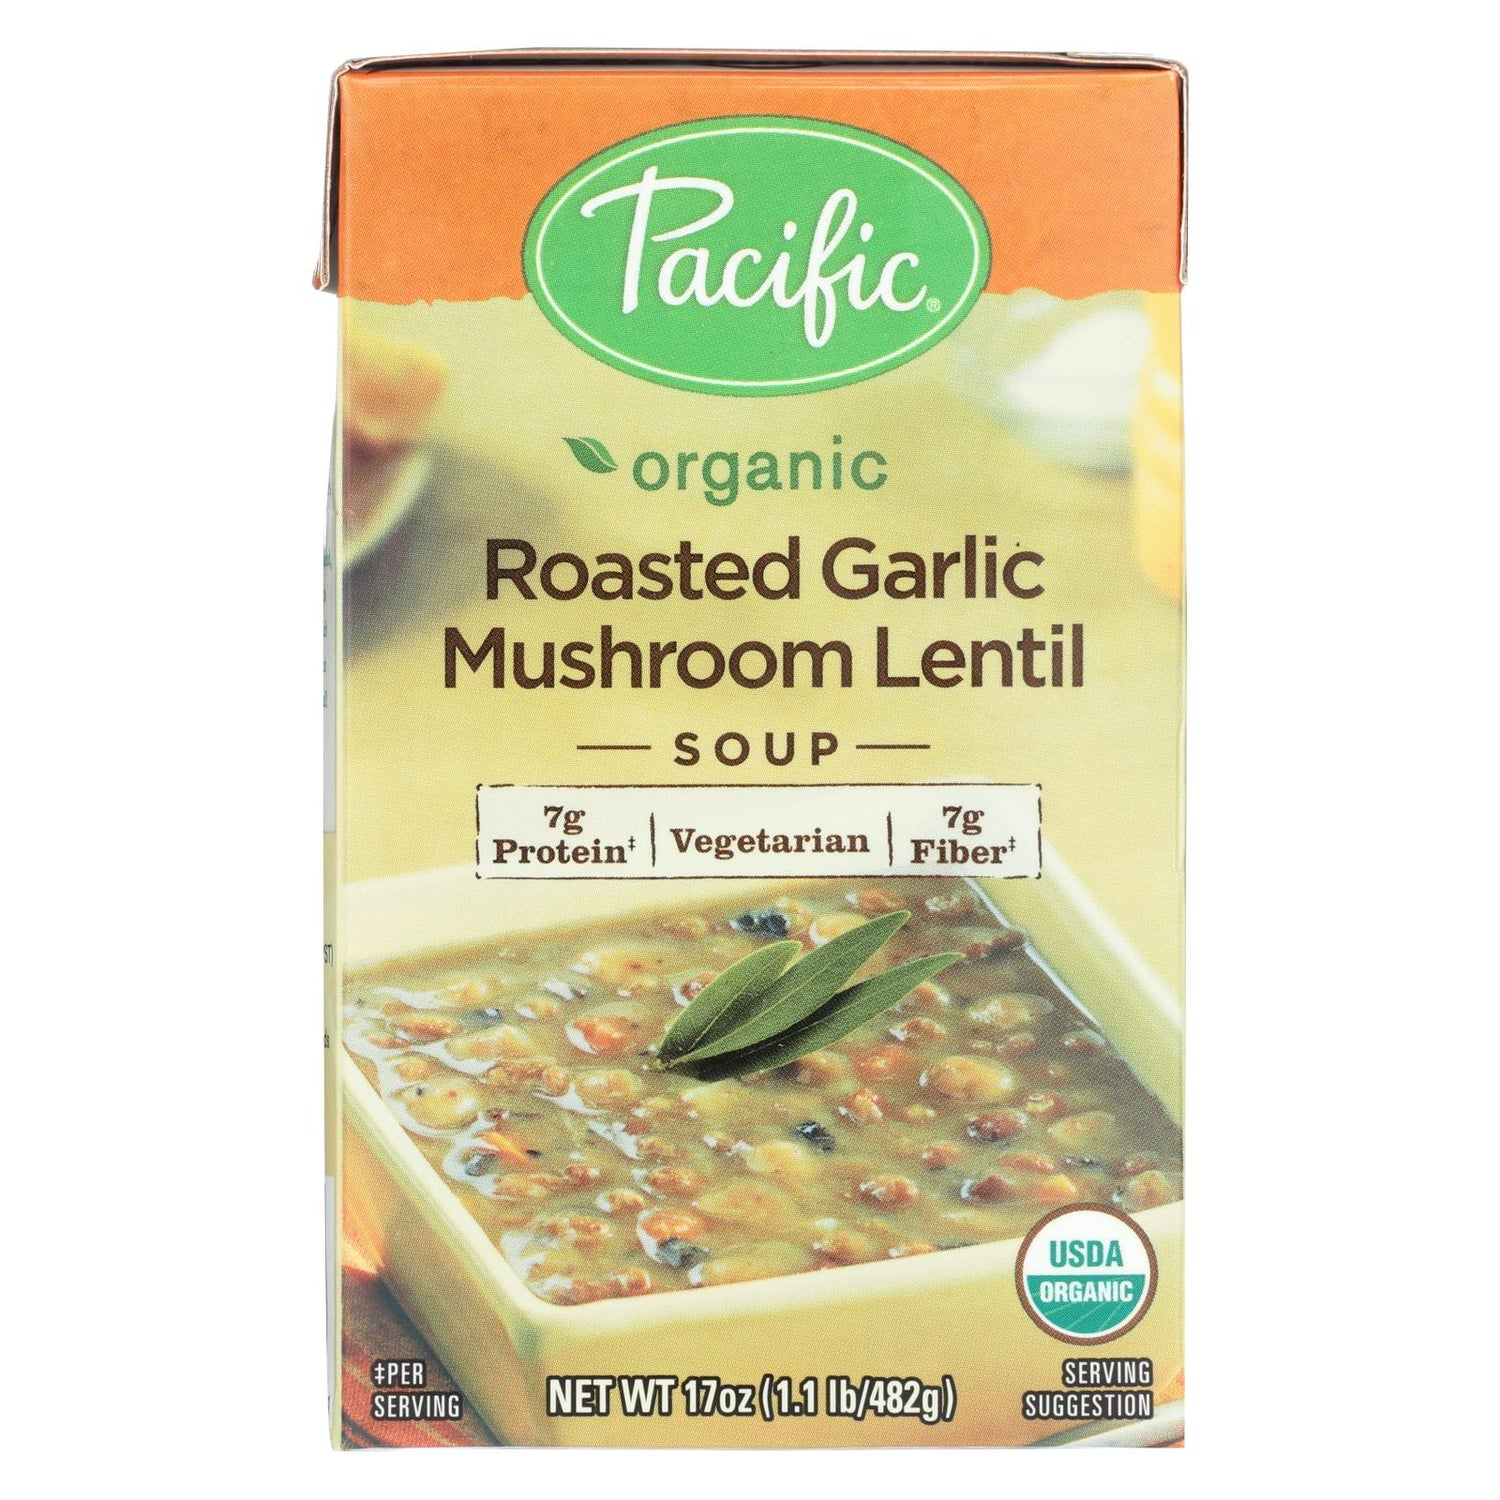 Pacific Natural Foods Mushroom Lentil Soup - Roasted Garlic - Case Of 12 - 17 Oz.